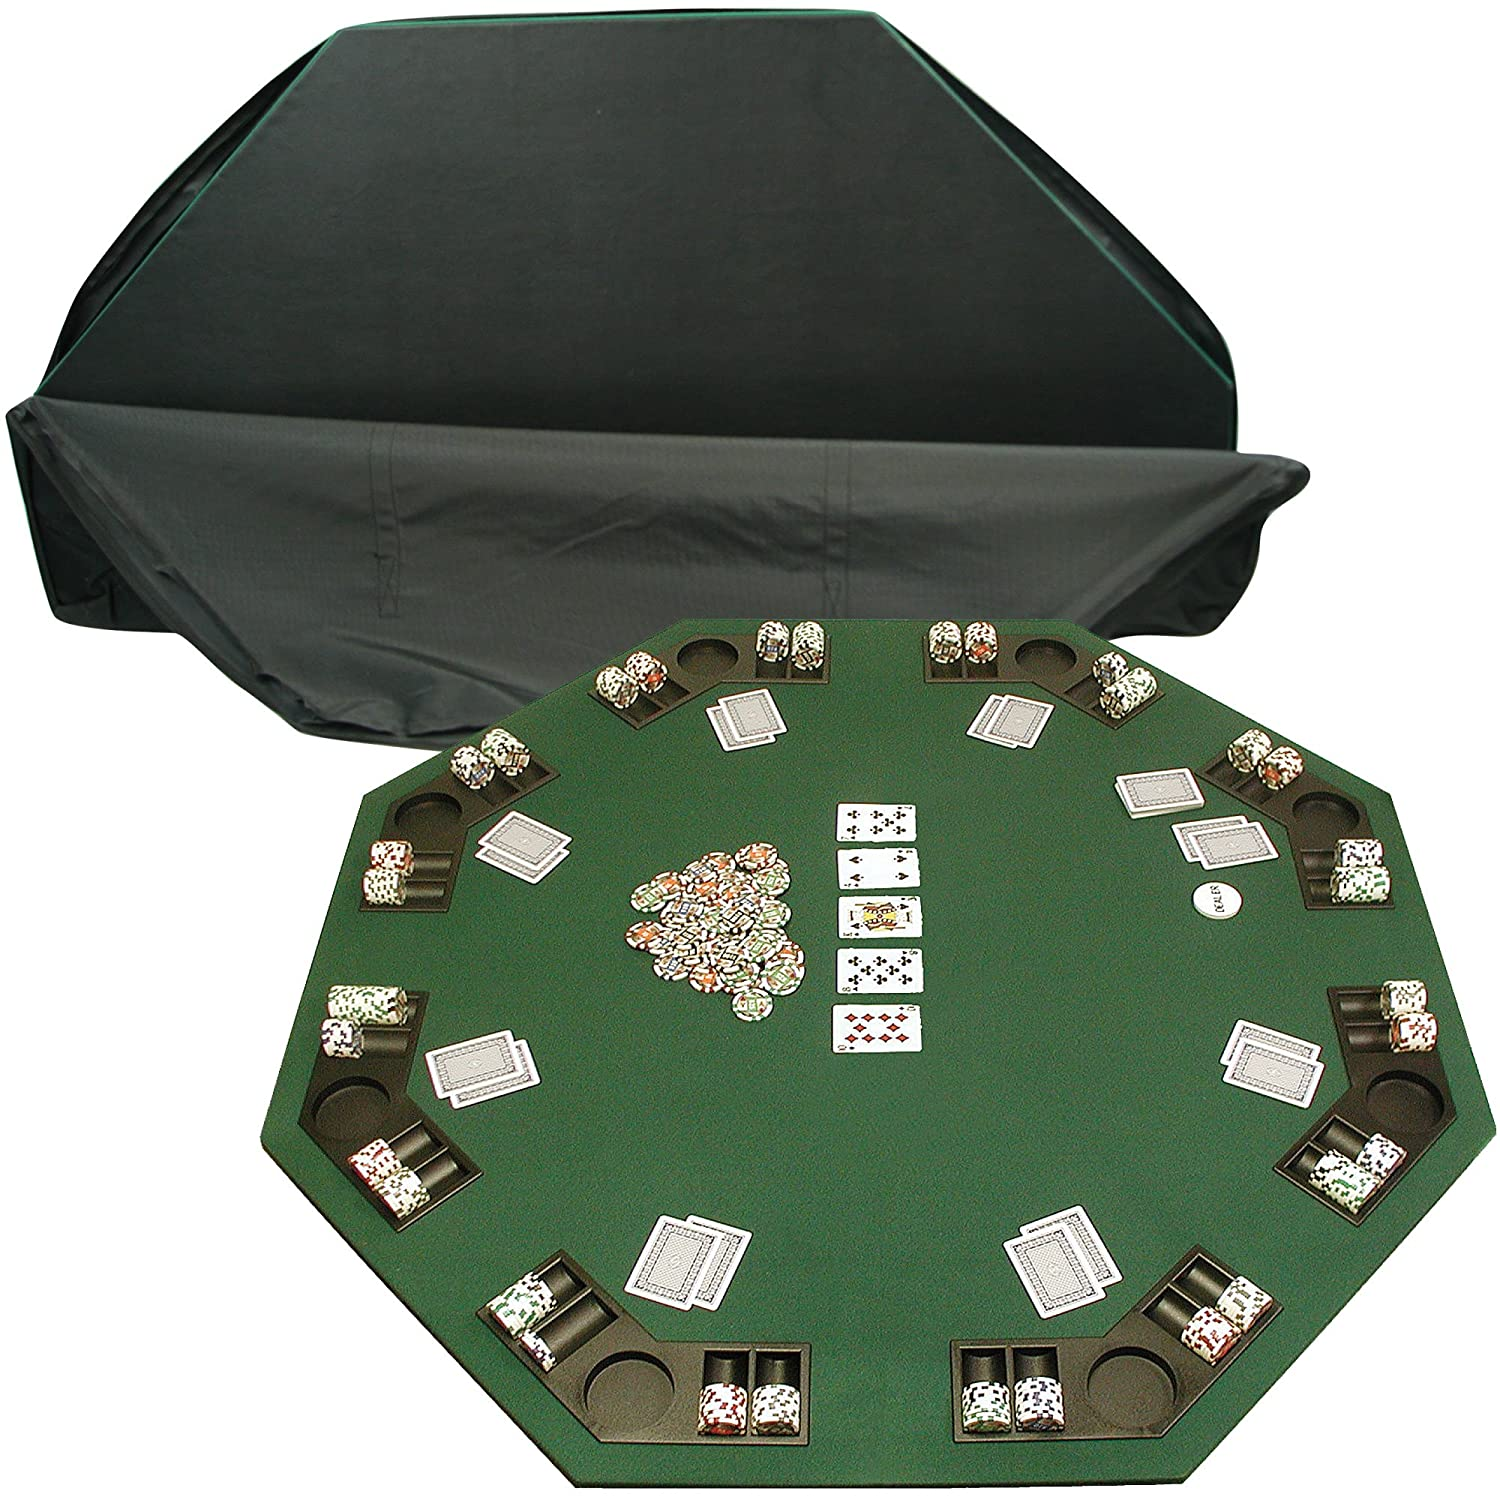 Blackjack table top view - Amazon Com Trademark Deluxe Poker And Blackjack Table Top With Case Sports Outdoors